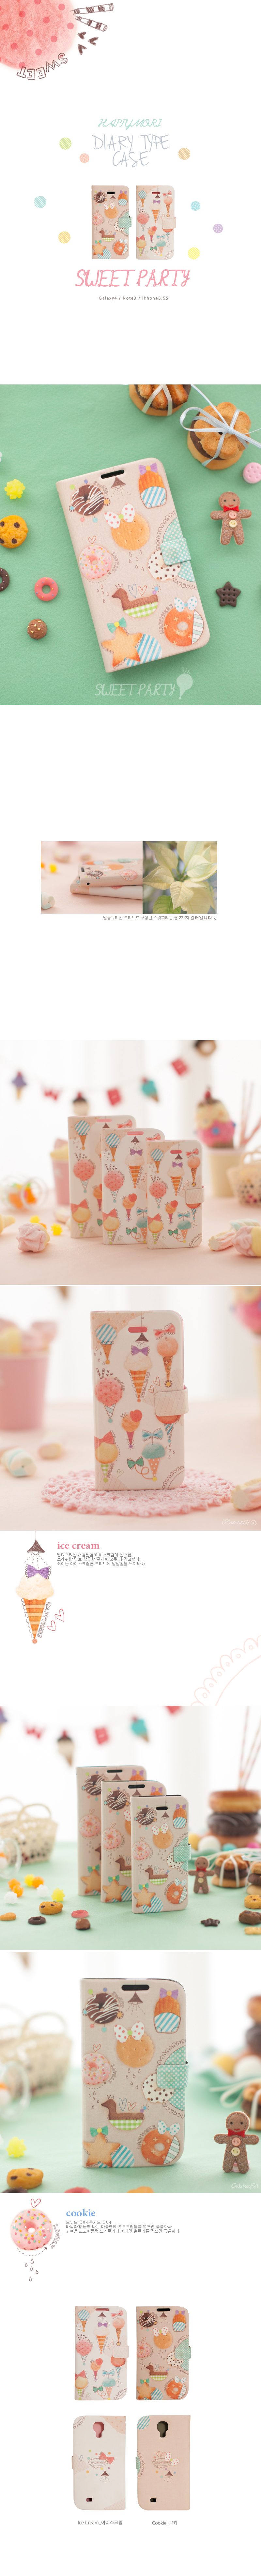 [HAPPYMORI] Flip Cover Case _ Sweet Party(iPhone4_4s,iPhone5_5s,iPhone6_6s)